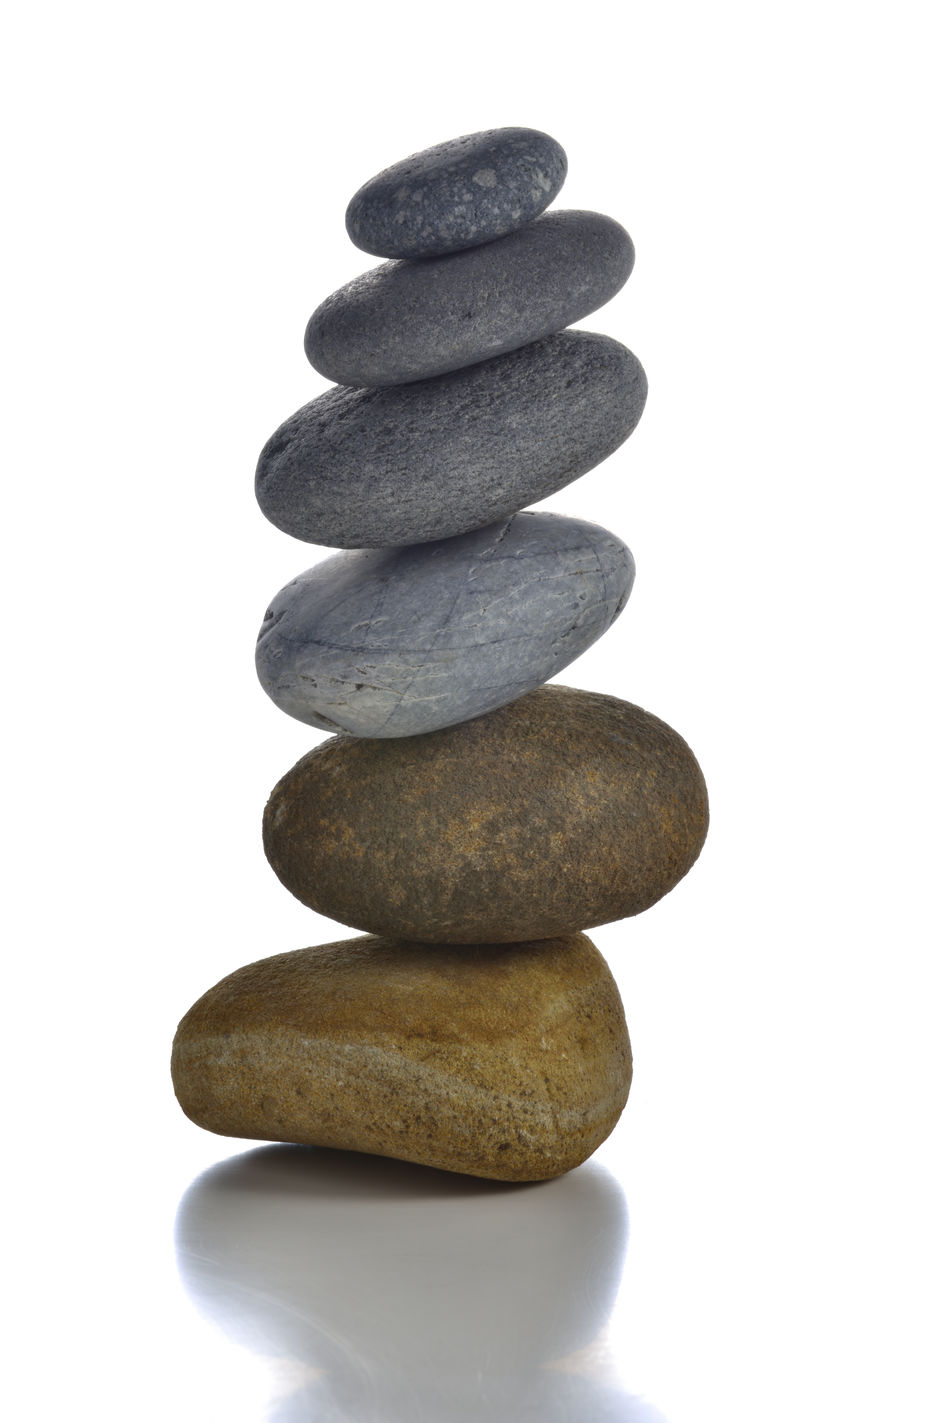 AIMS Alternative Medicine Beauty In Nature Close-up Explore Healthcare And Medicine Herbal Medicine Medicine Nature No People Partner Pebble Reached Relationship Rock - Object Small Group Of Objects Spirituality Stack Stand Up Standard Pole Stone - Object Symbols Of Peace Taiwan Up Zen-like